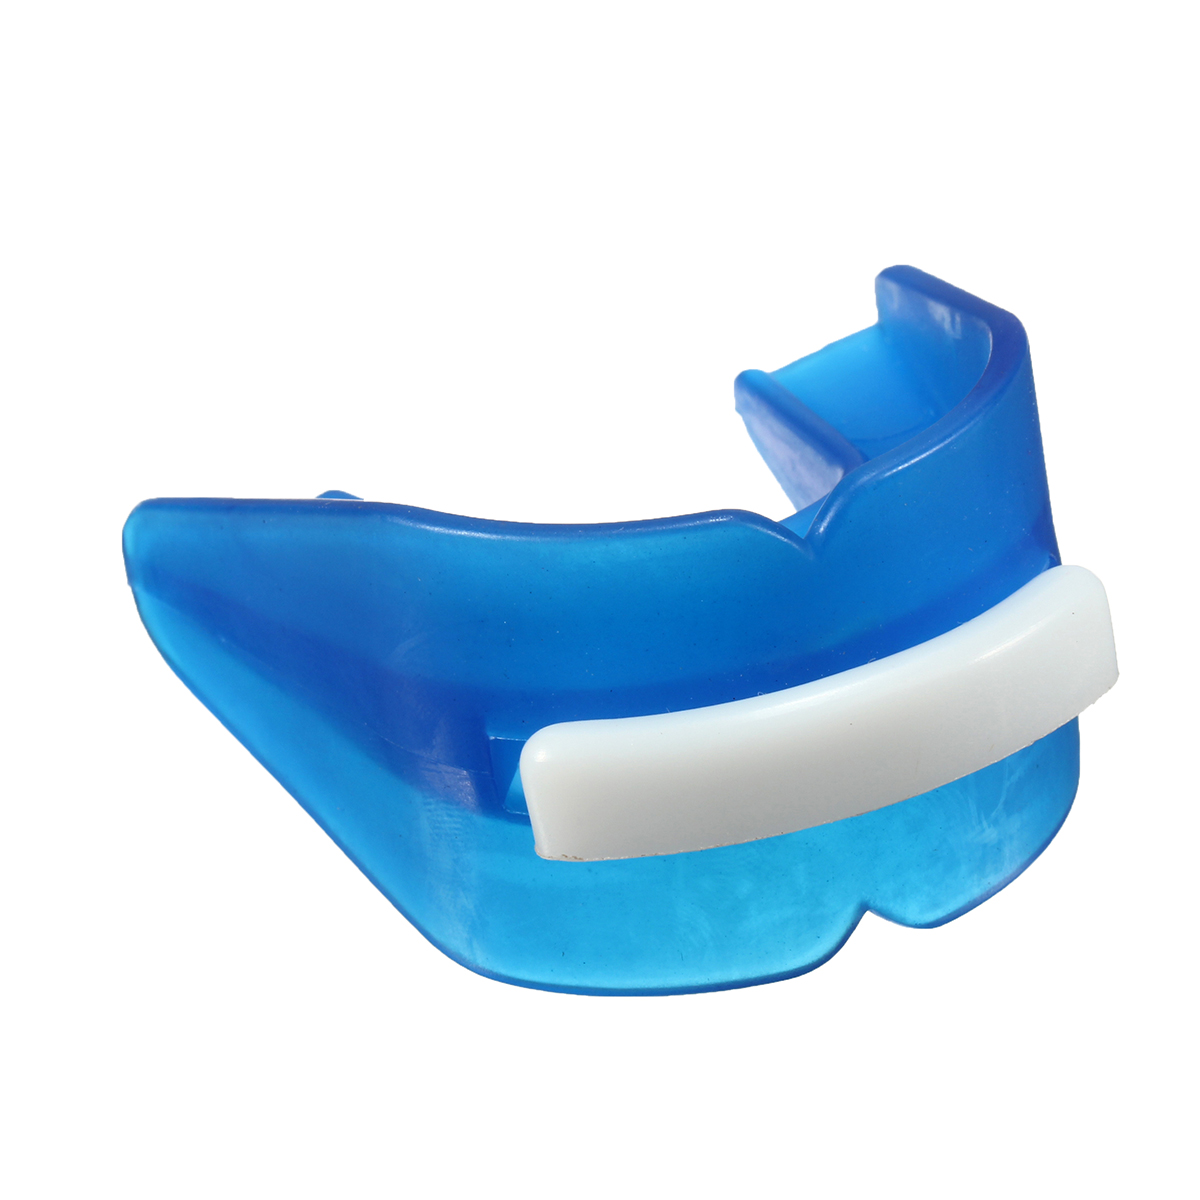 Sleep Aid Stop Snoring Anti Snore Device Sleep Aid Mouth Guard Piece Stop Snoring